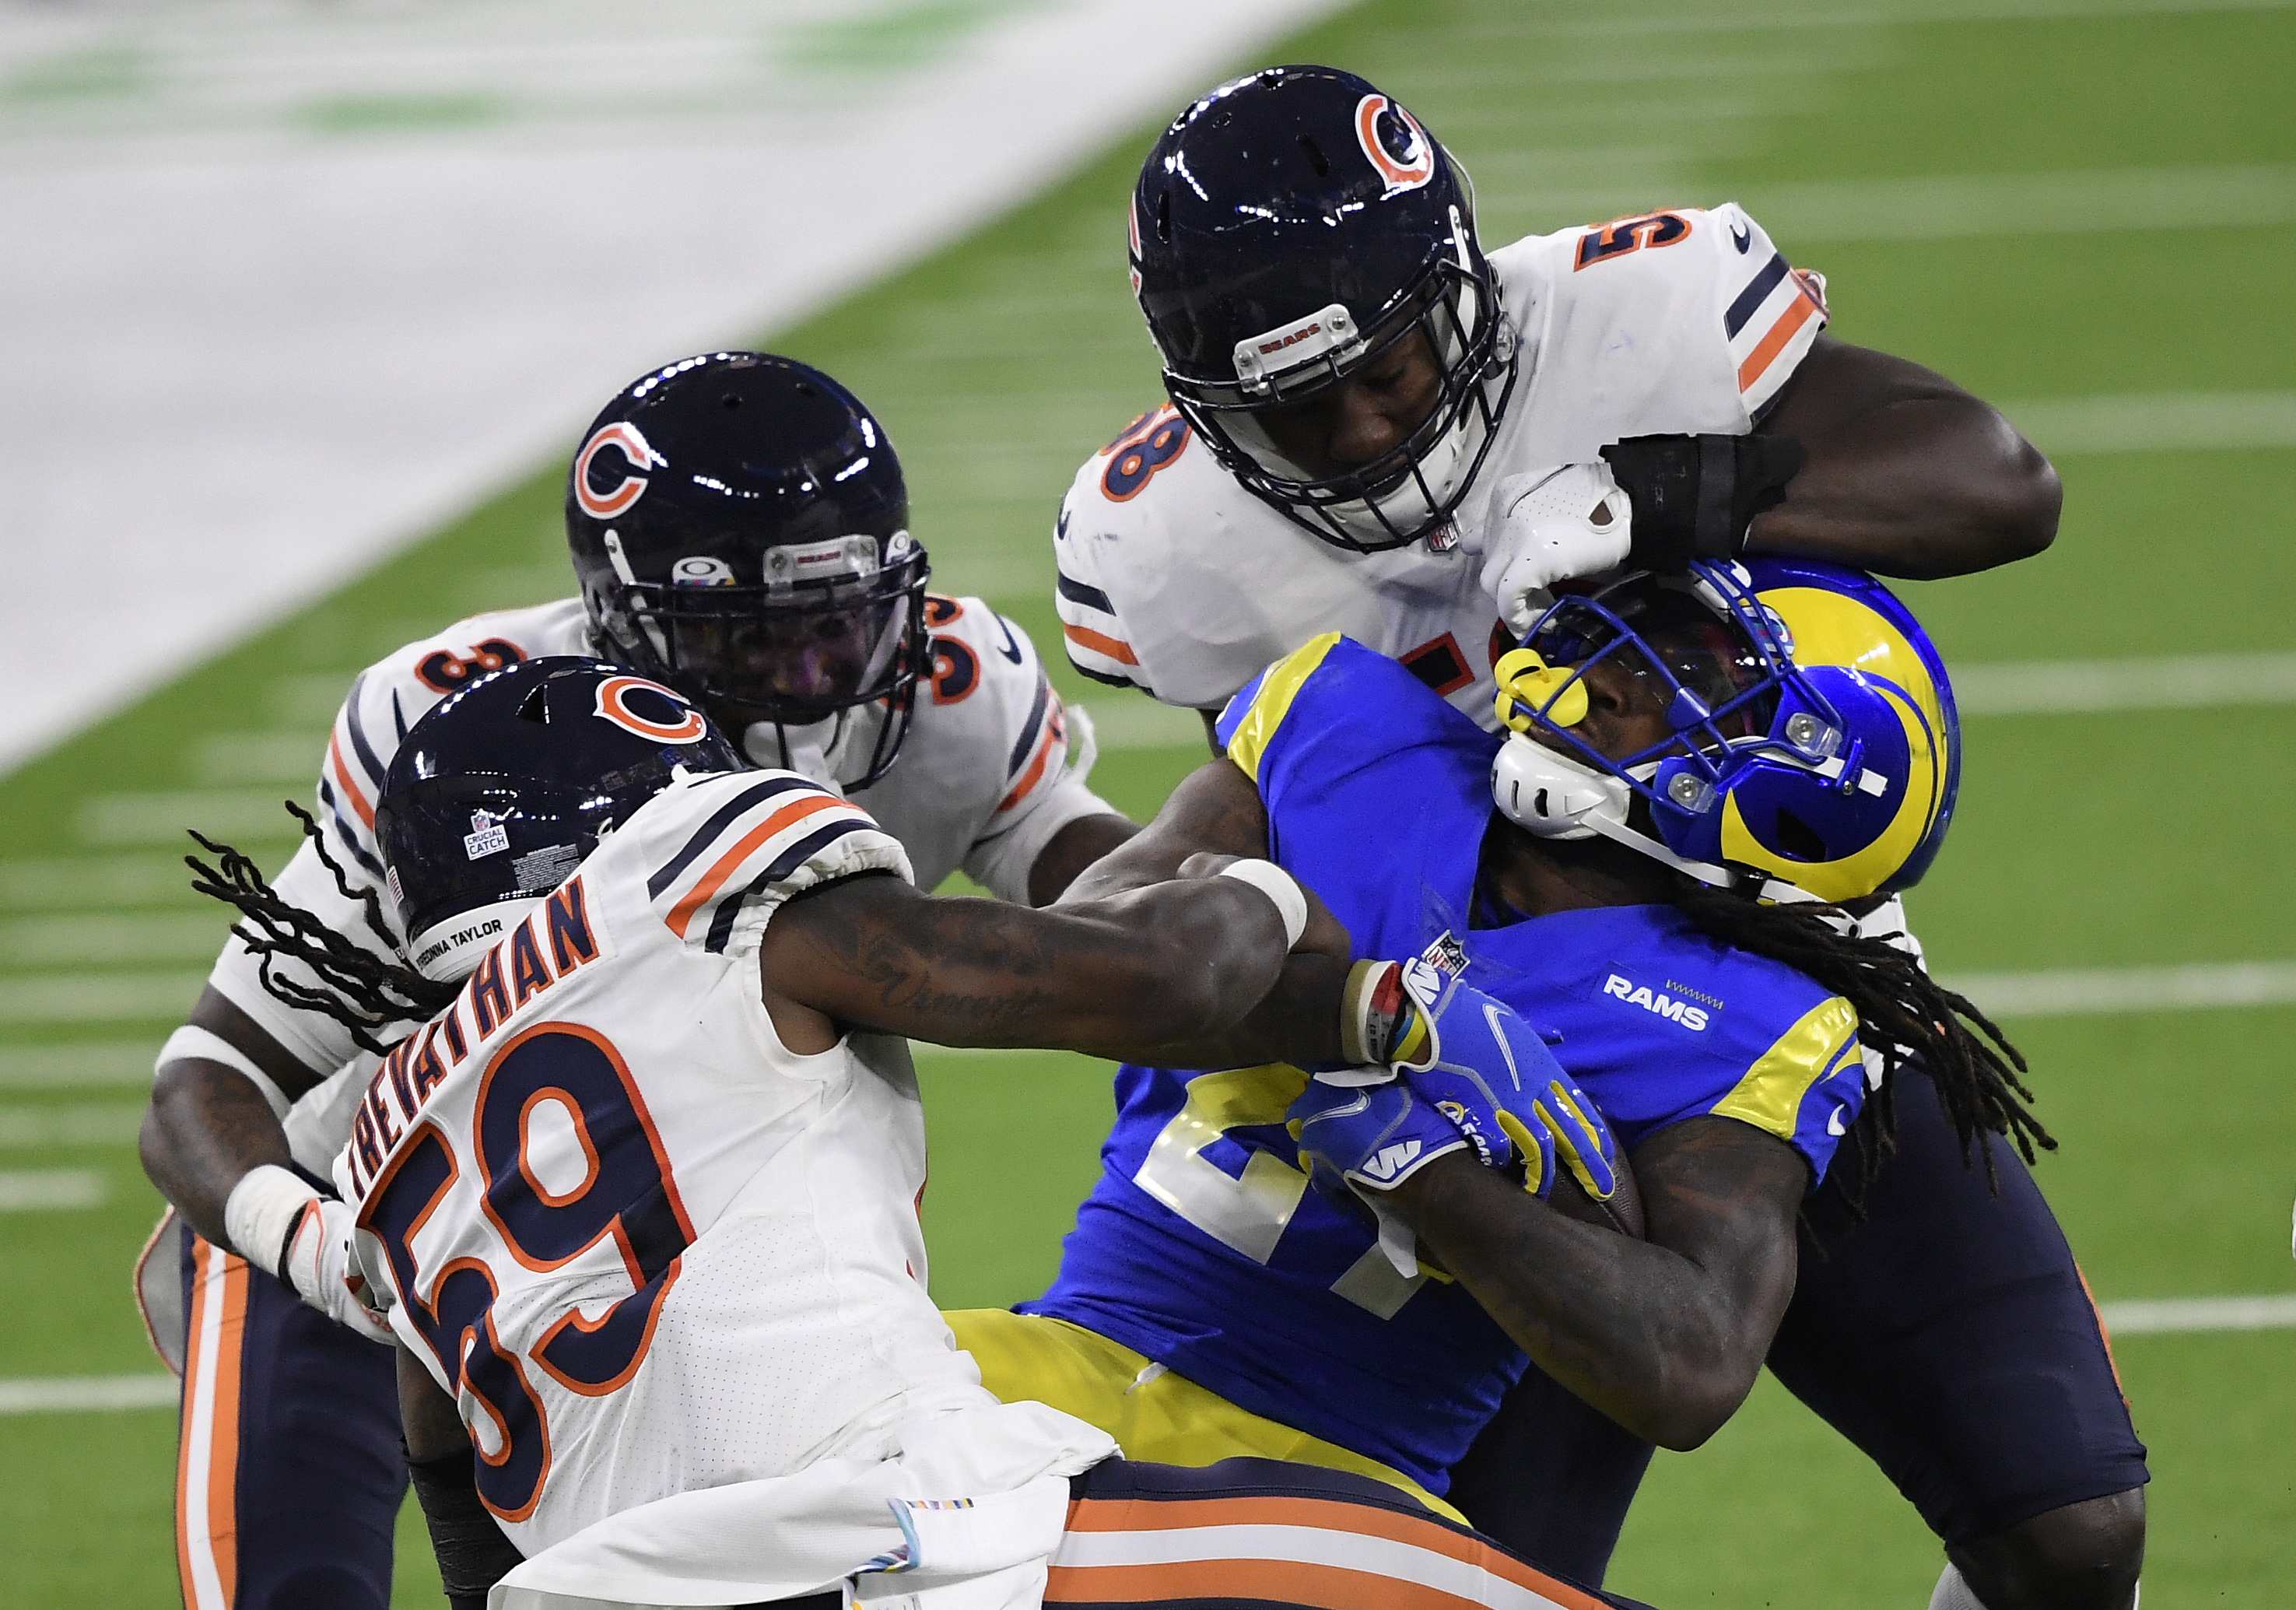 Bears linebackers Roquan Smith and Danny Trevathan tackle Rams running back Darrell Henderson last year.